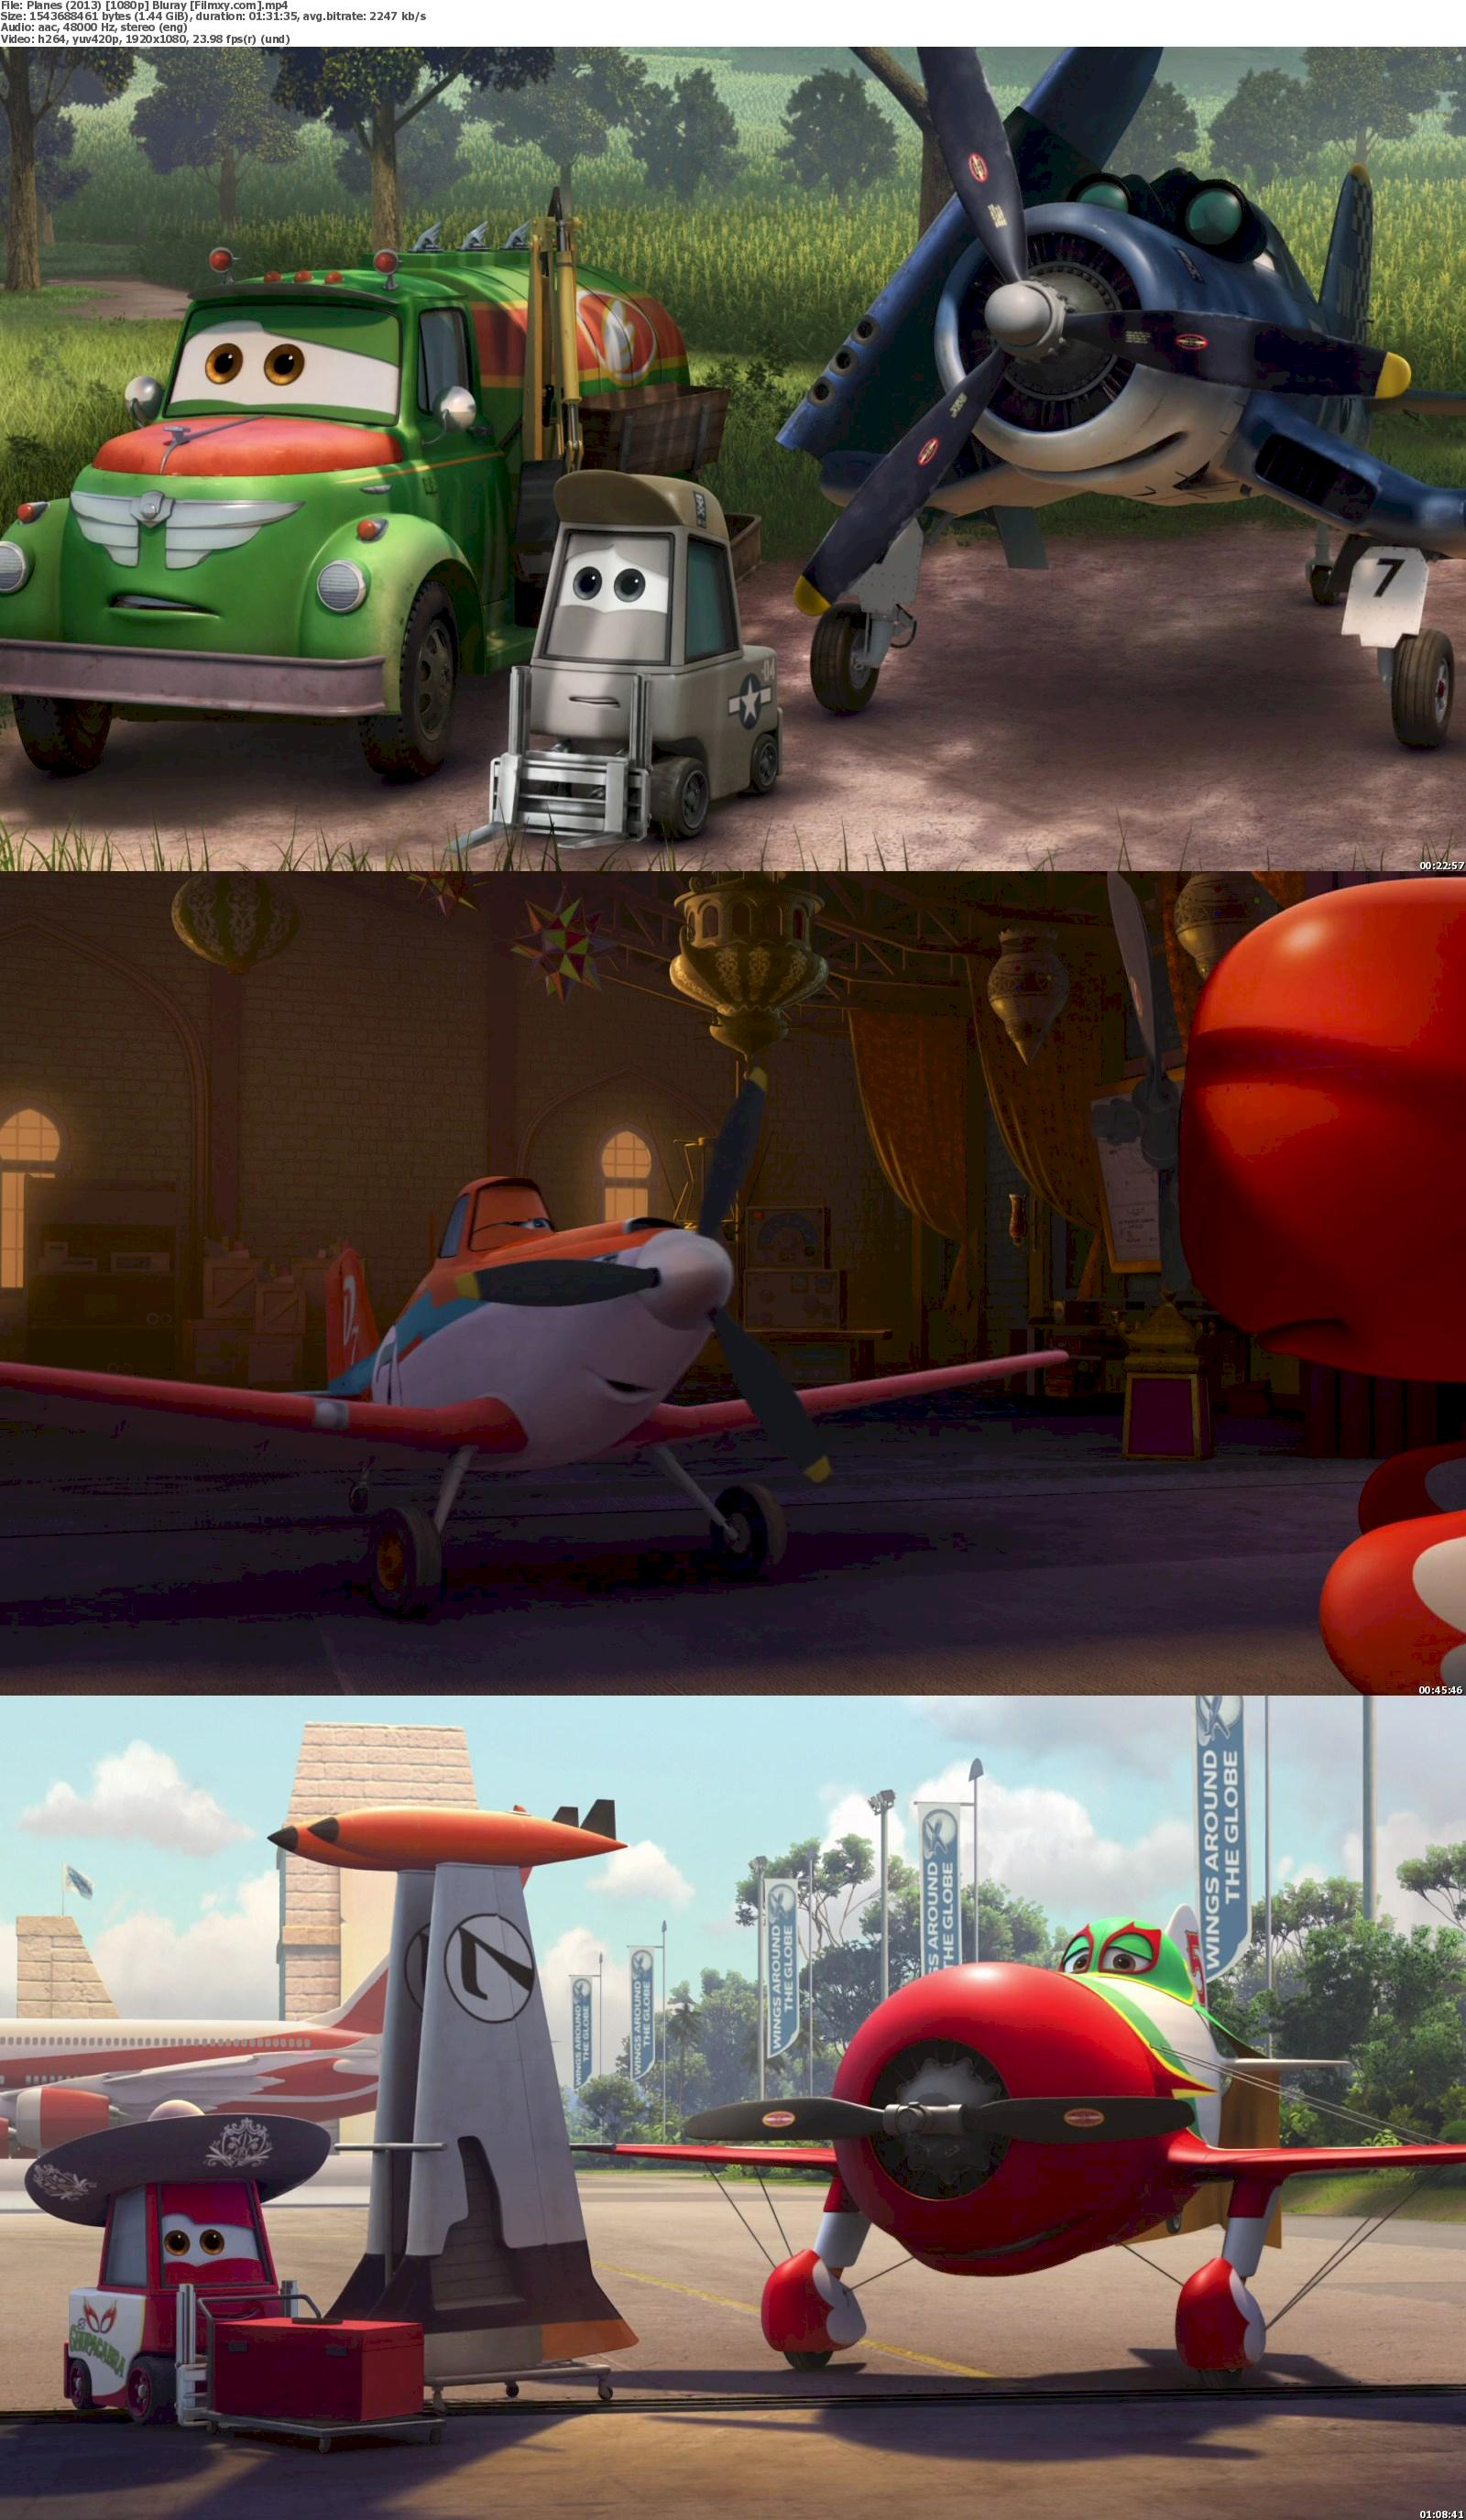 Planes (2013) 720 & 1080p Bluray Free Download 1080p Screenshot